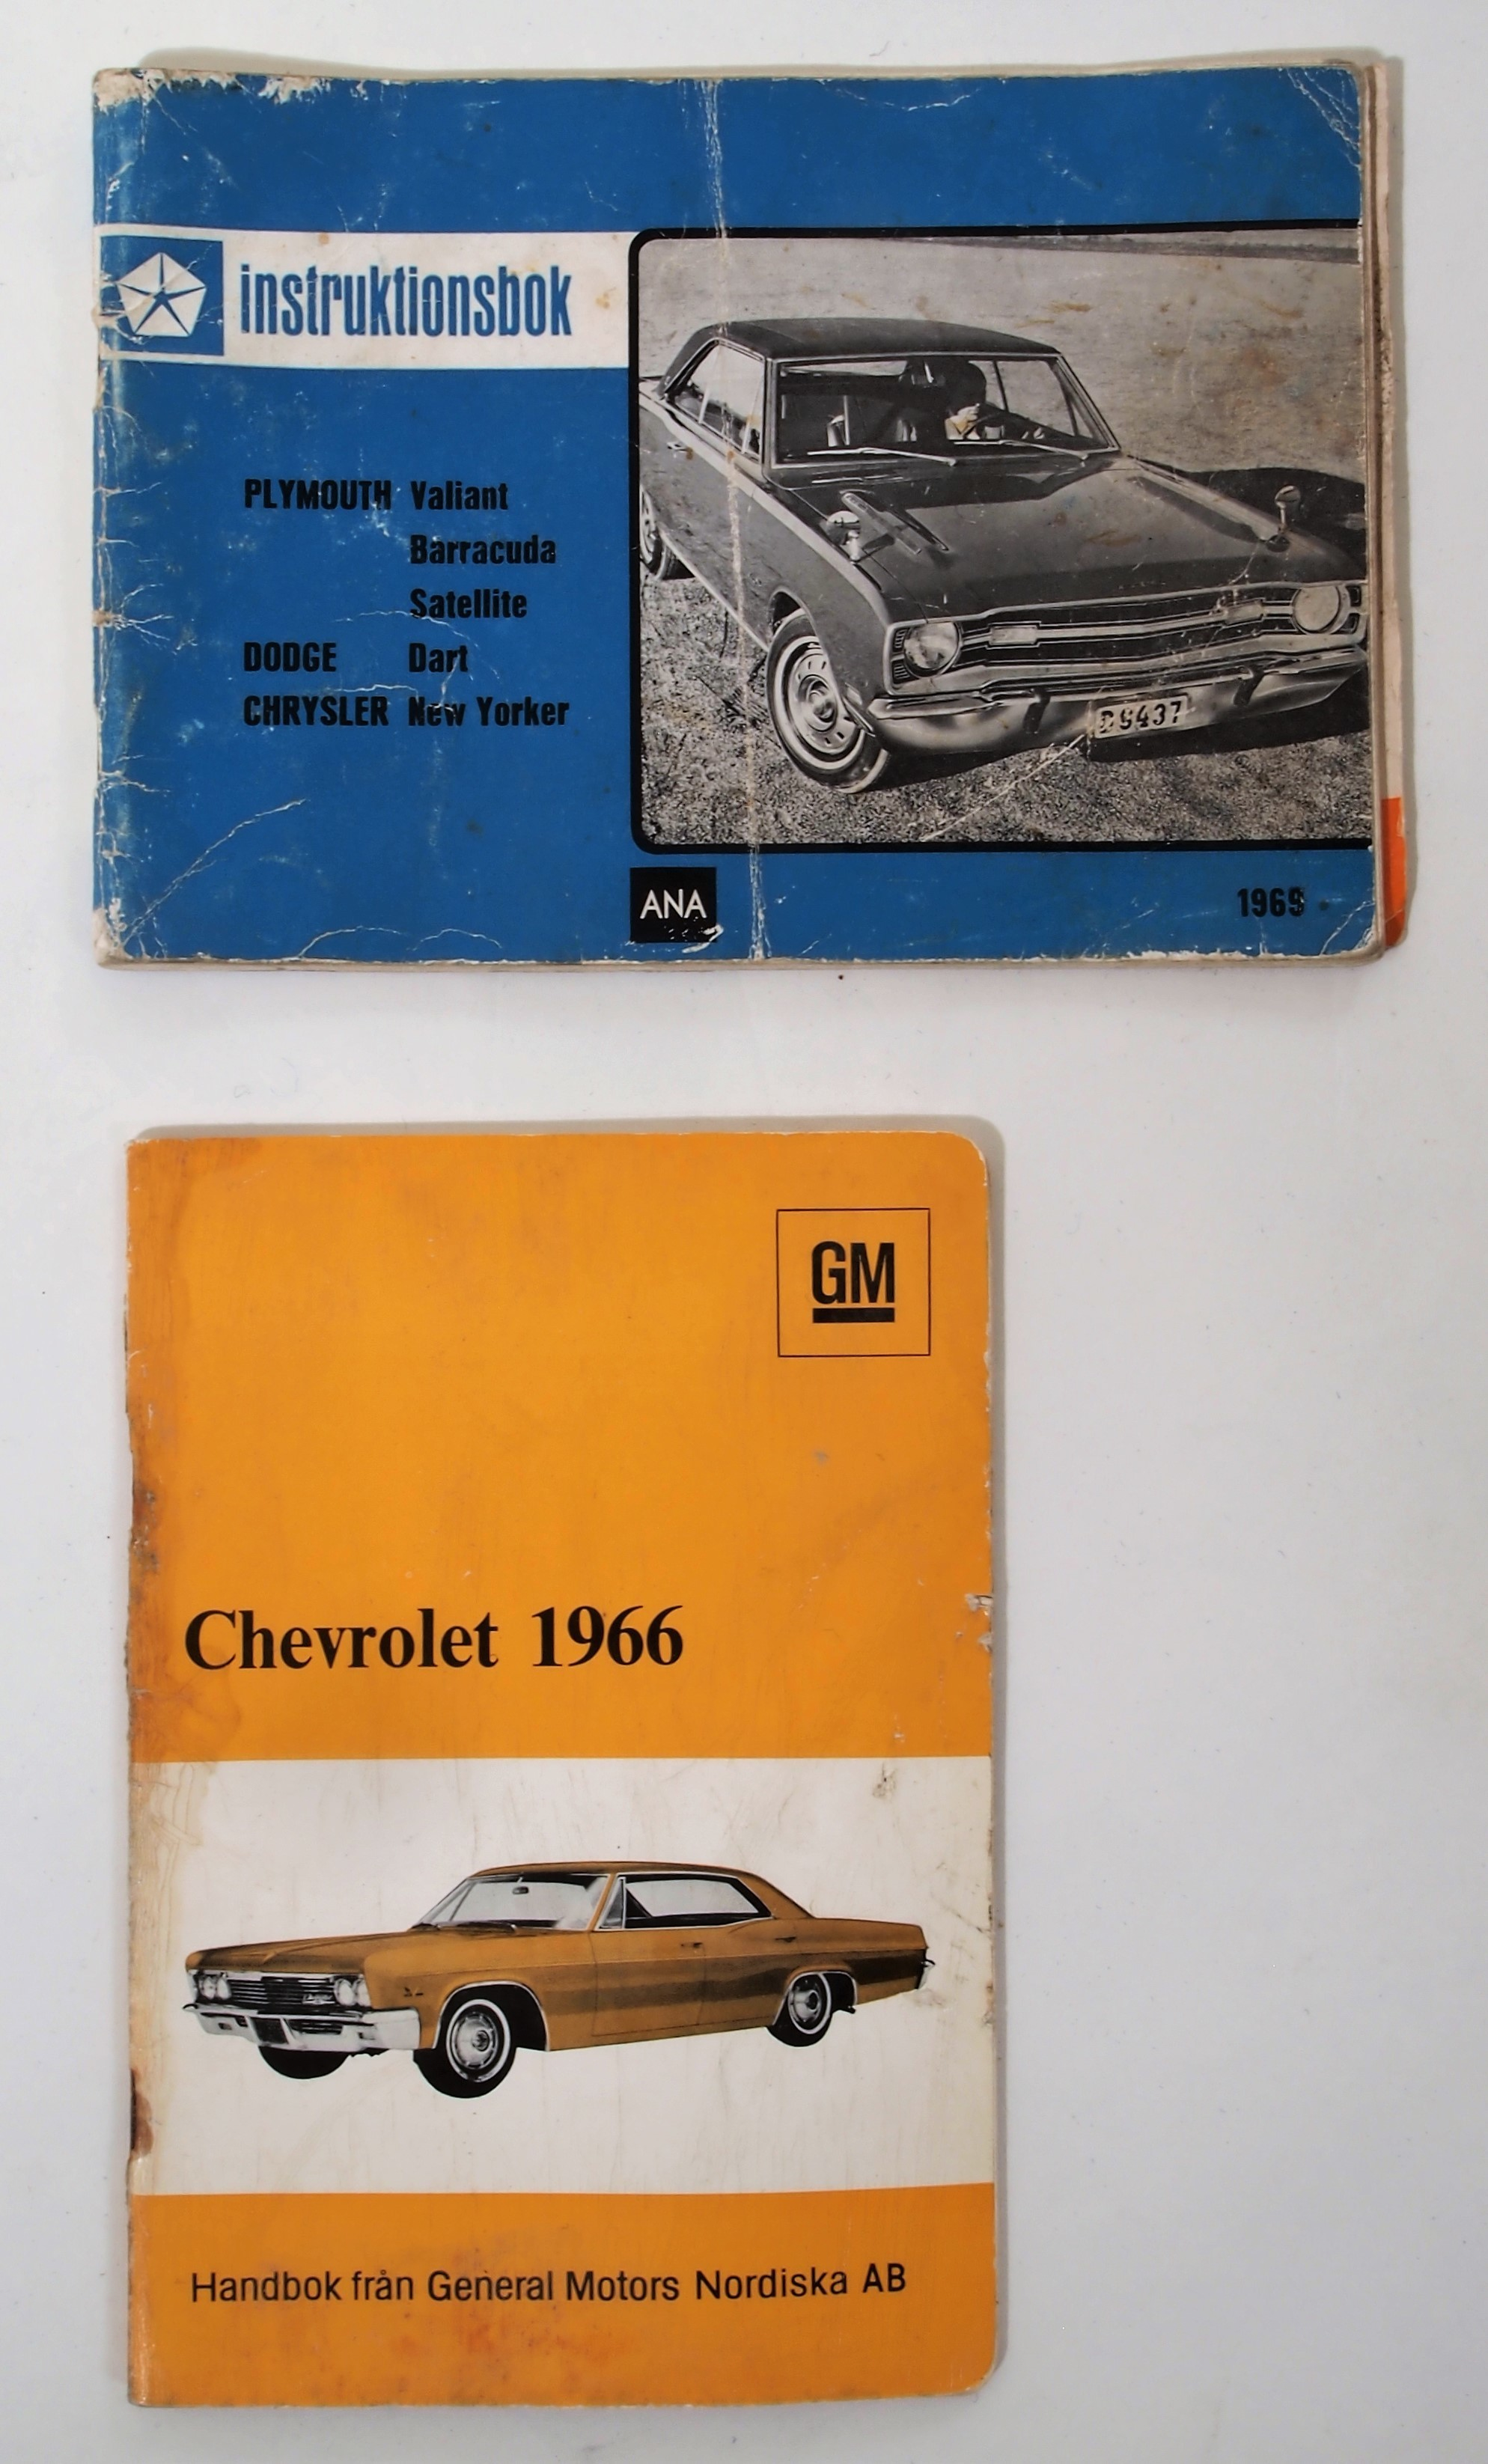 Instruktionsbok plymouth dodge chrysler 1969 och chevrolet 1966 instruktionsbok plymouth dodge chrysler 1969 och chevrolet 1966 books maps manuscripts auctionet publicscrutiny Choice Image